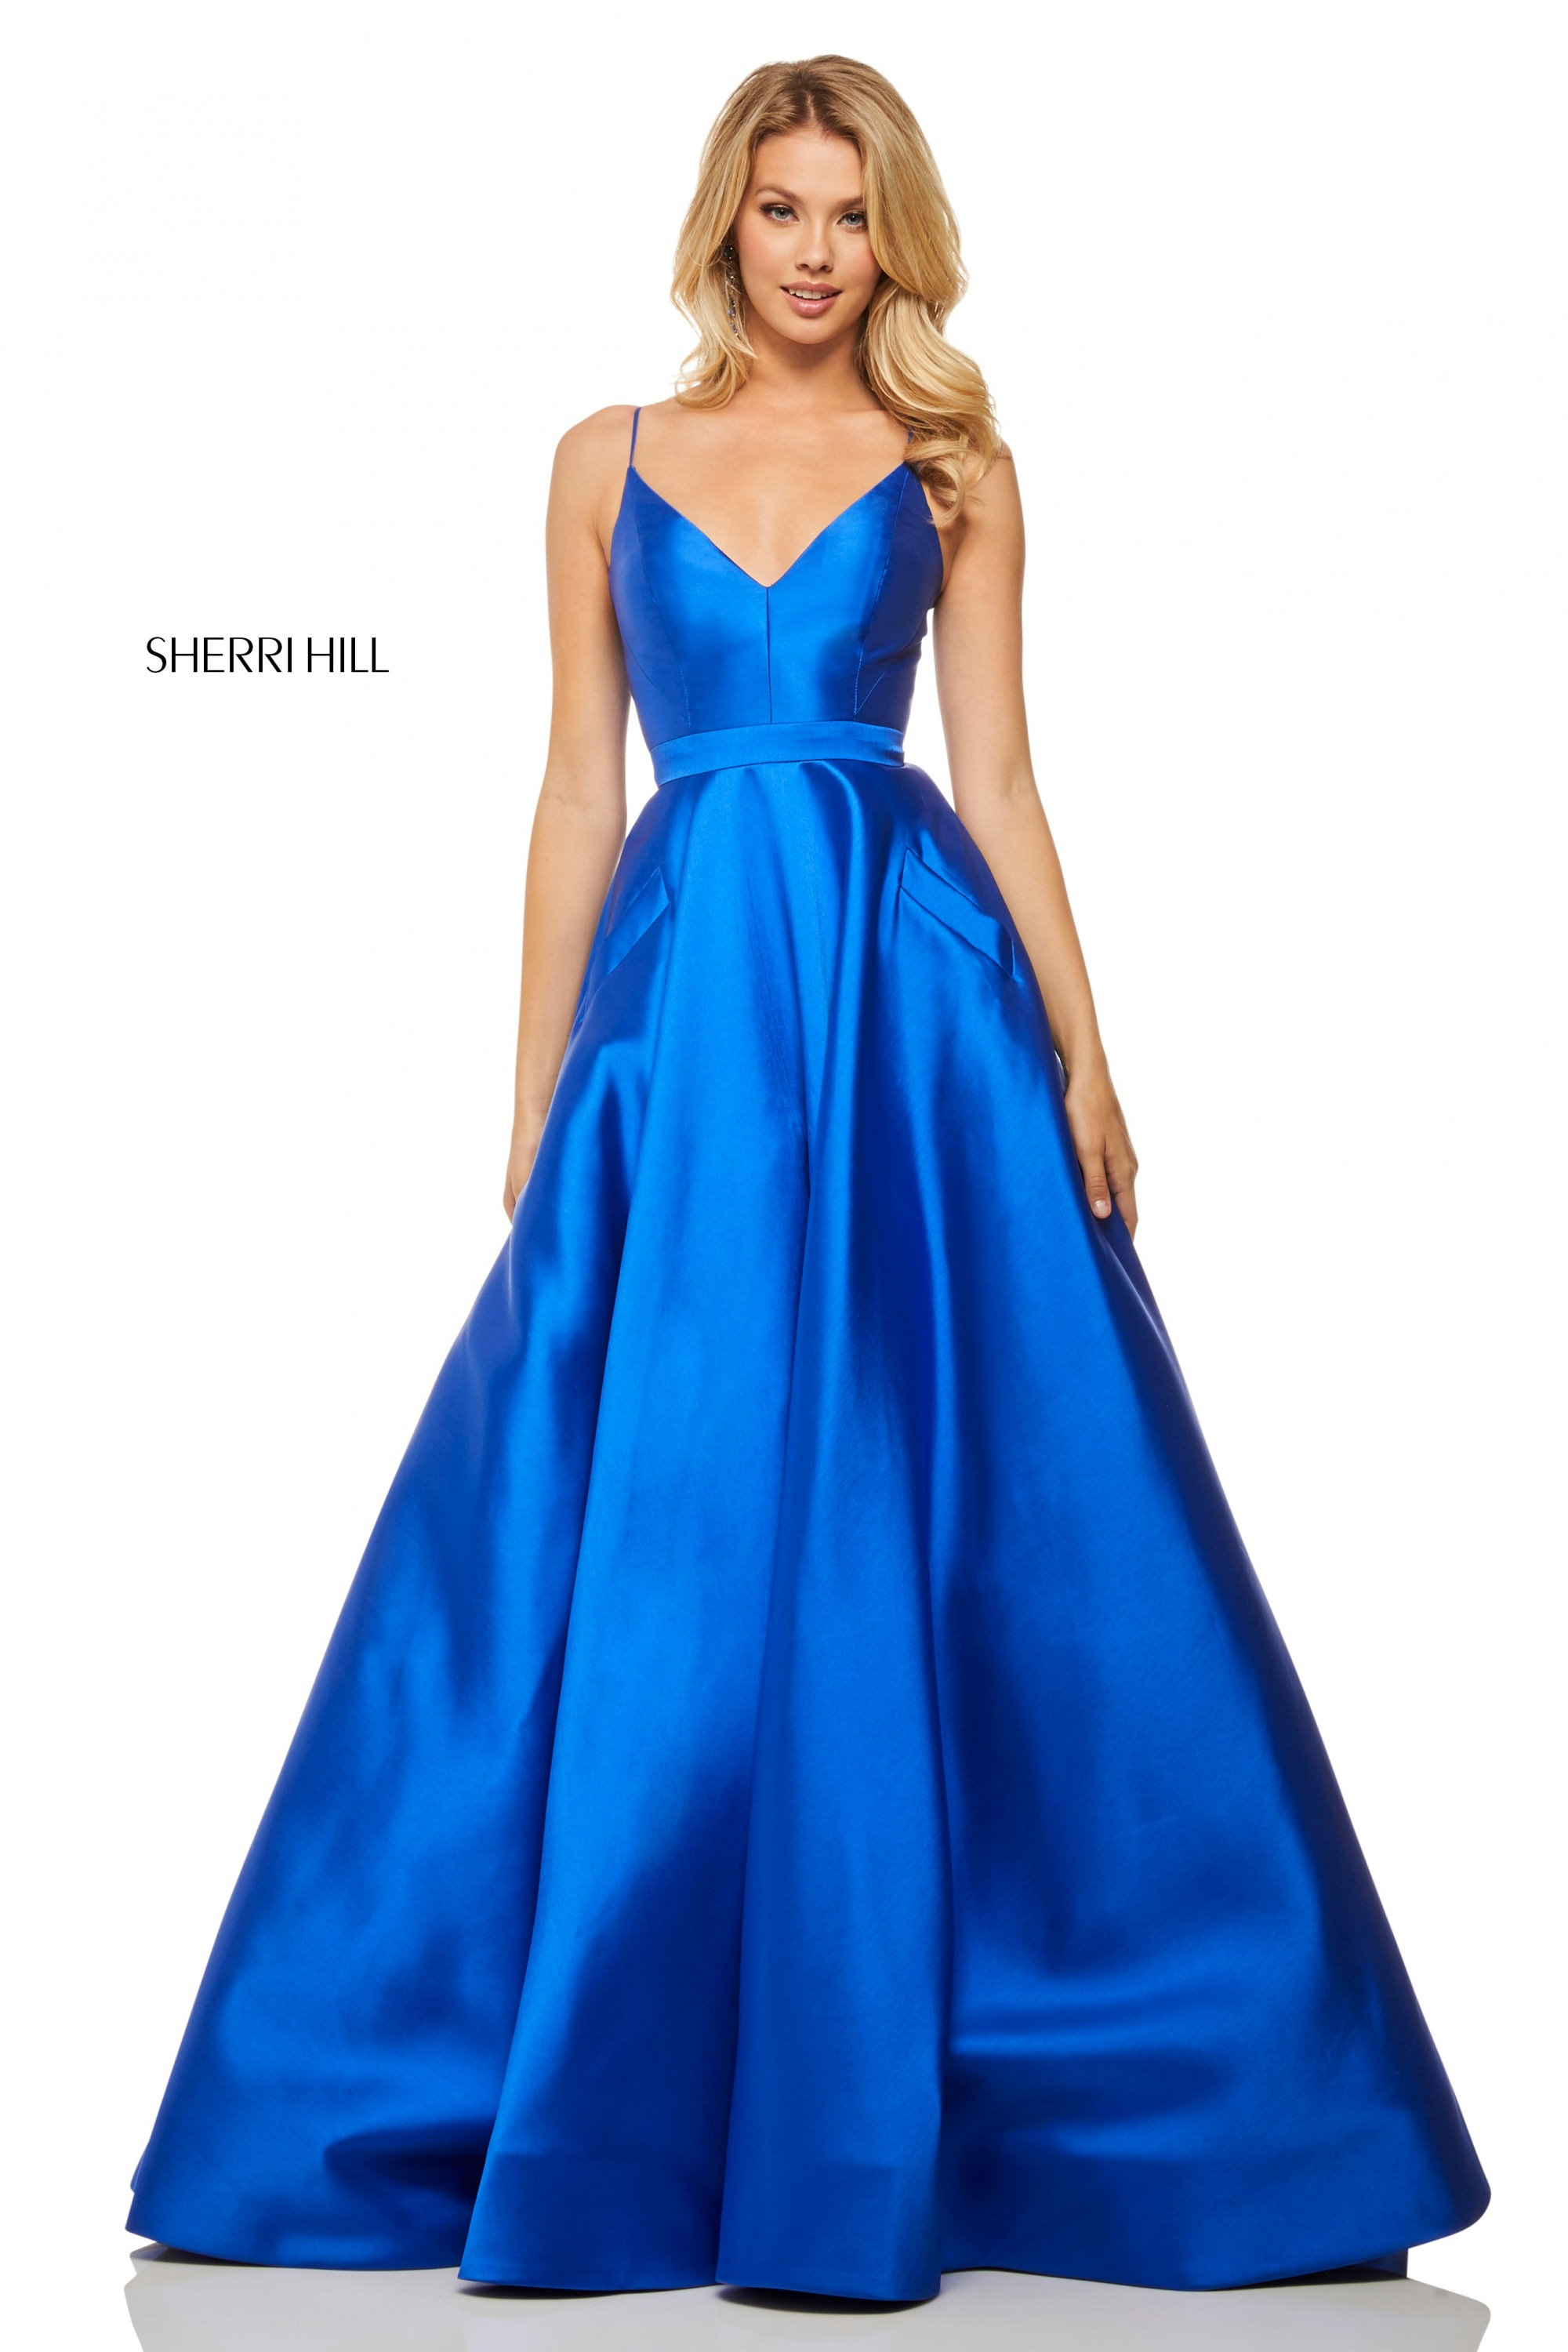 Sherri Hill 52821 - Simple V-Neck With Corset Back